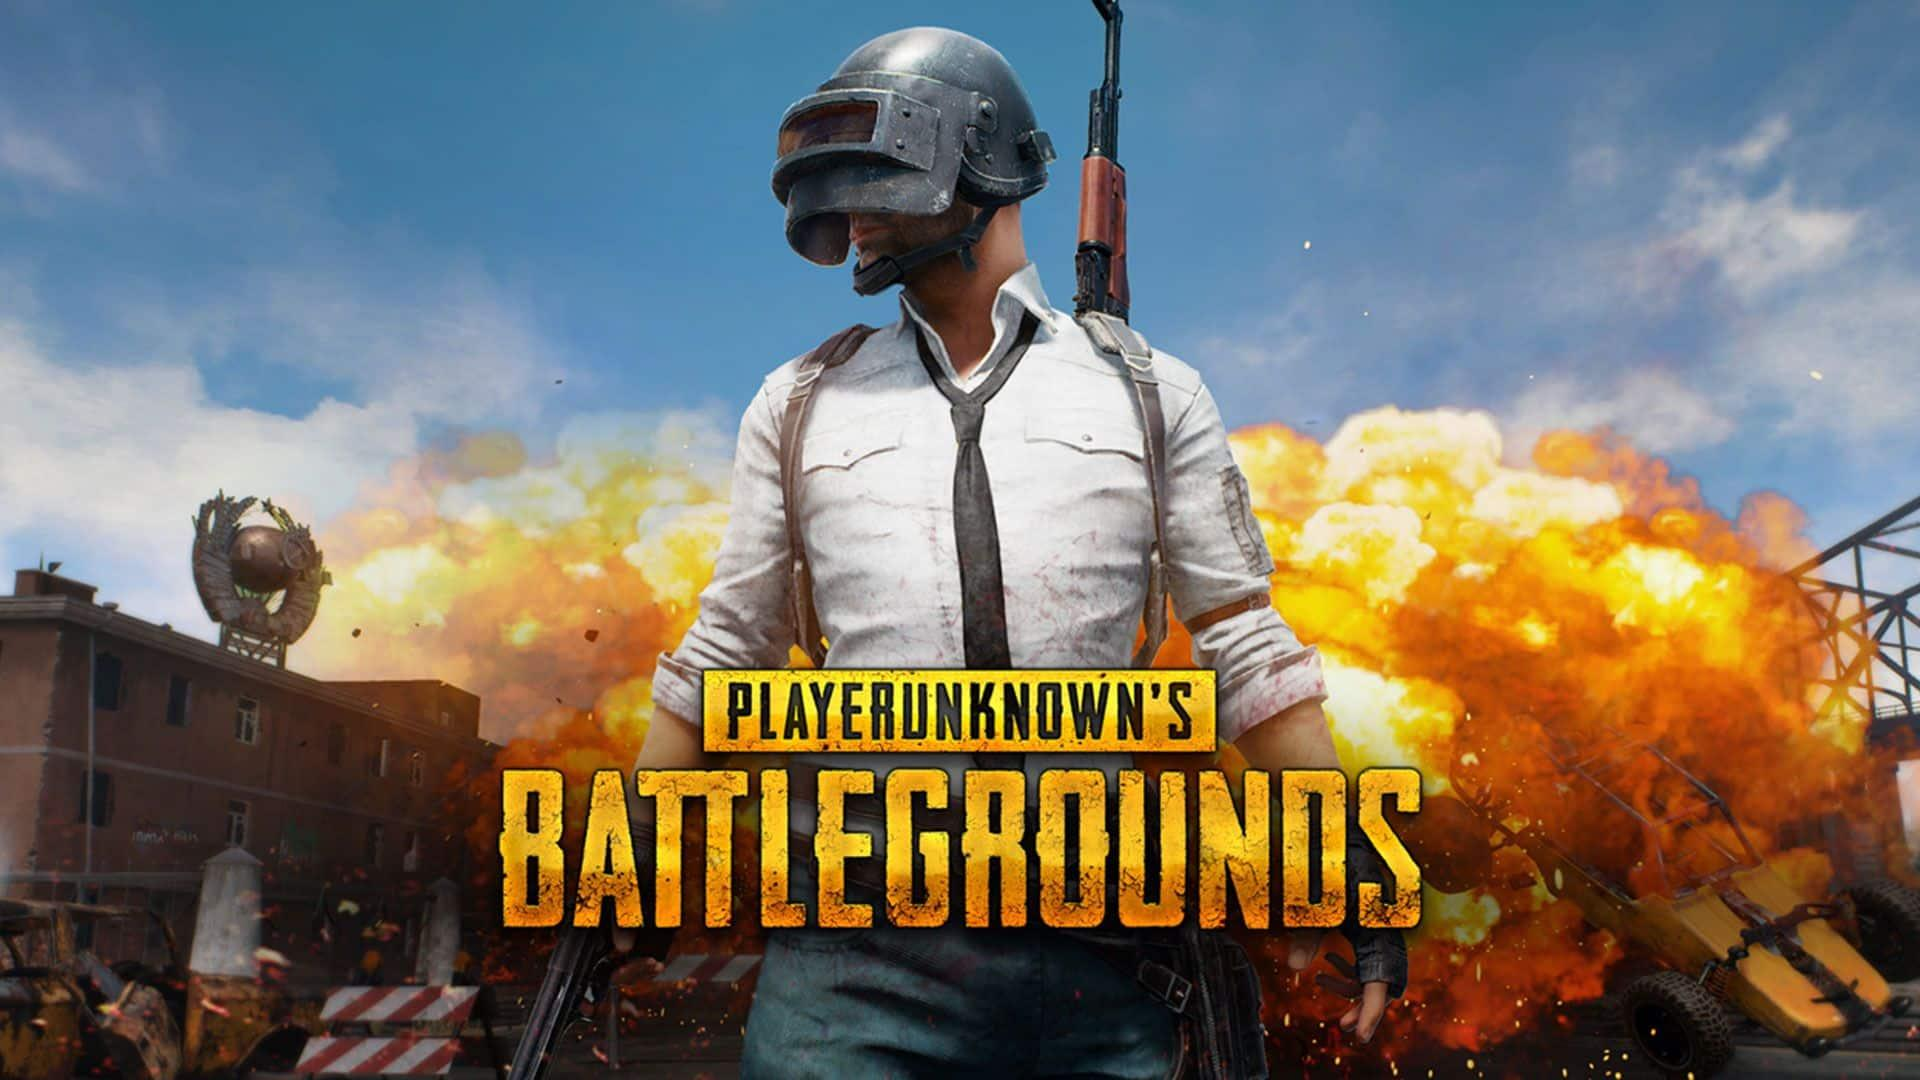 PLAYERUNKNOWN'S BATTLEGROUNDS [PUBG] PC Download free full game for windows